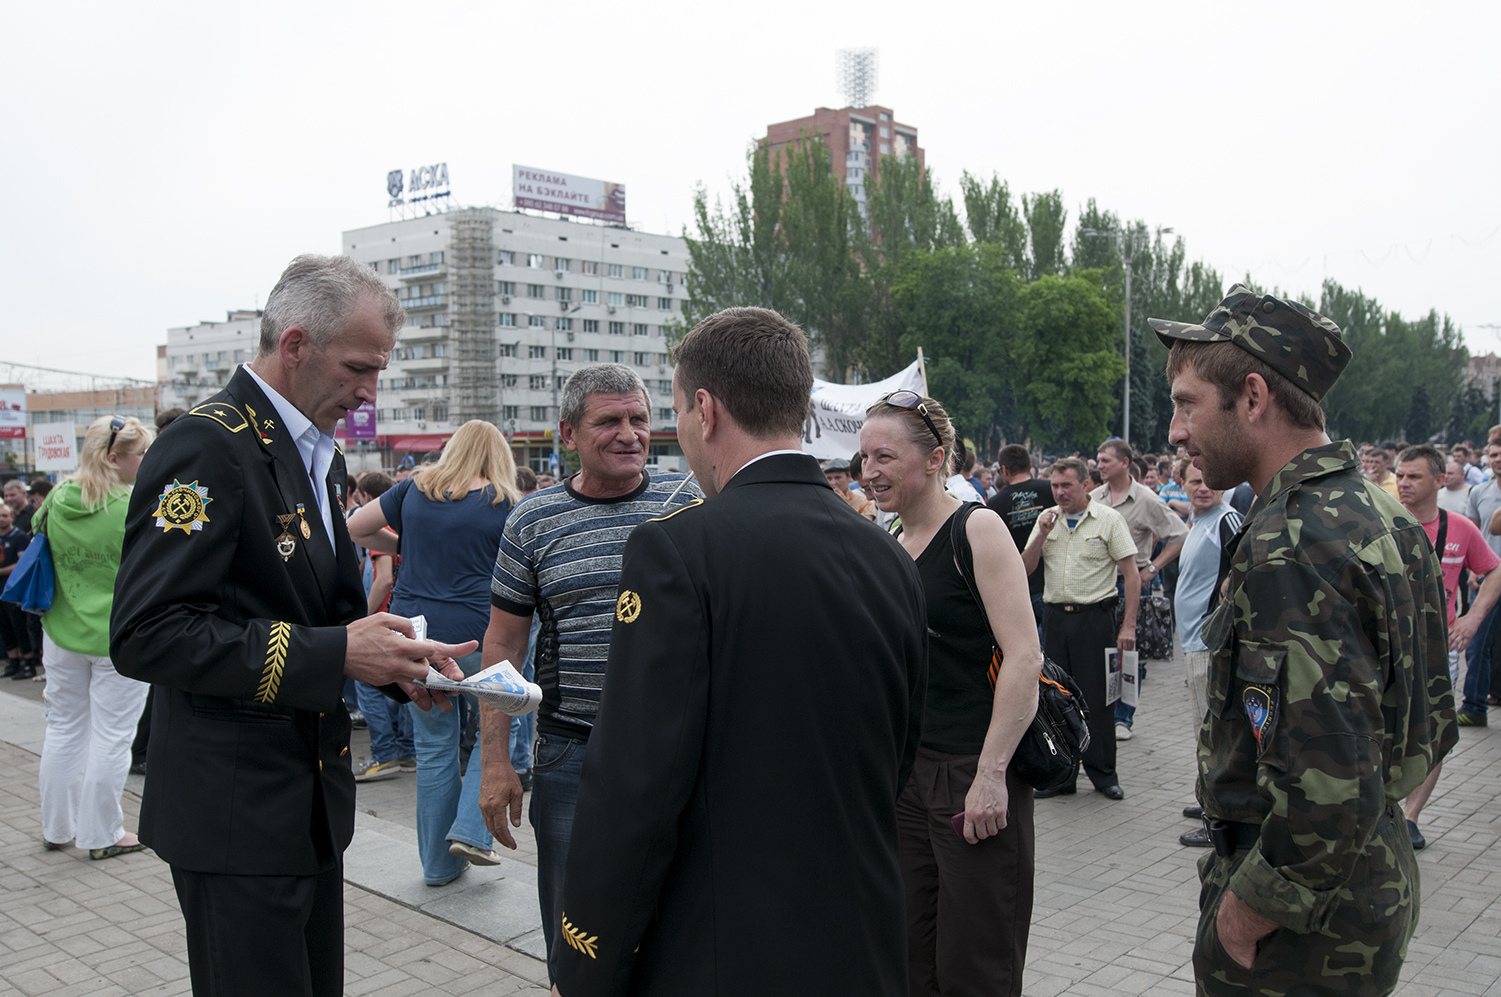 Miners in uniform speaking with demonstrators as an member of the Donetsk People's Republic Army